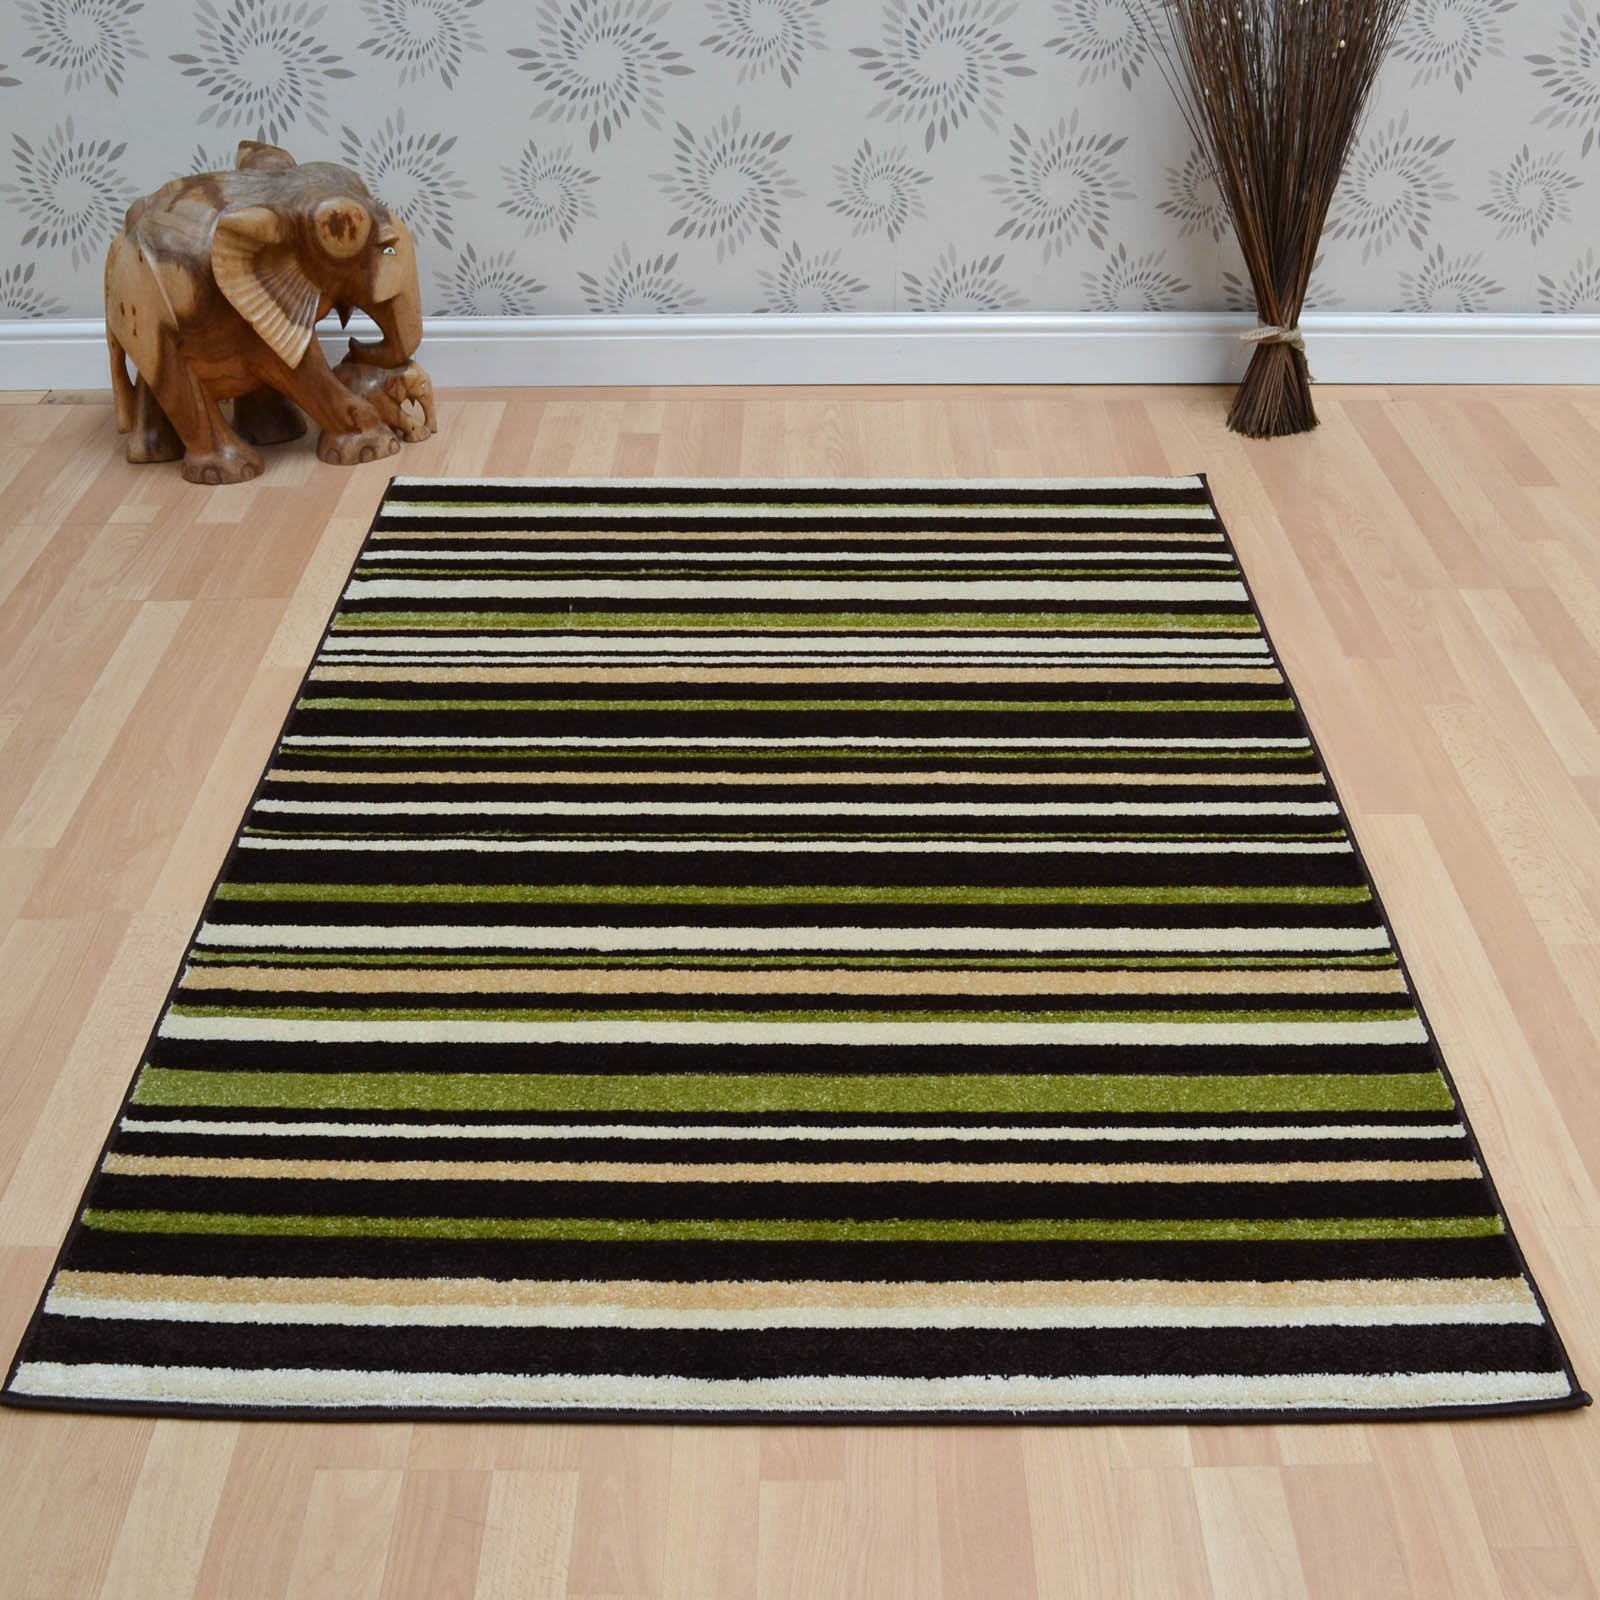 Vogue Stripes Rugs VG24 in Brown and Green